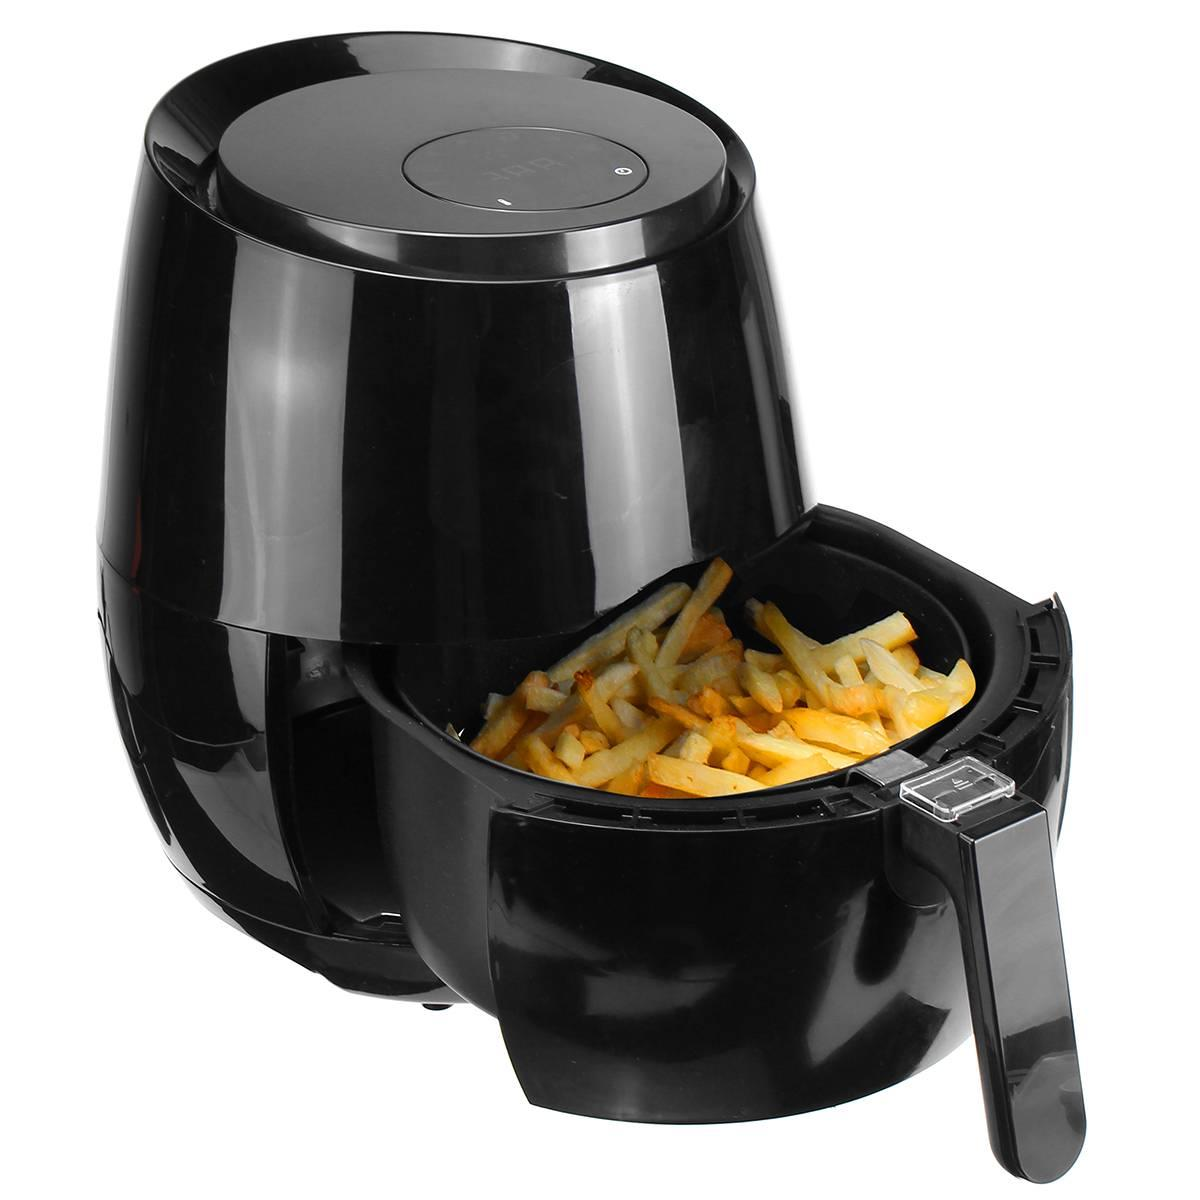 1400W 5.2L Oil <font><b>Air</b></font> <font><b>Fryer</b></font> Cooker Smart Airfryer Smart for fries